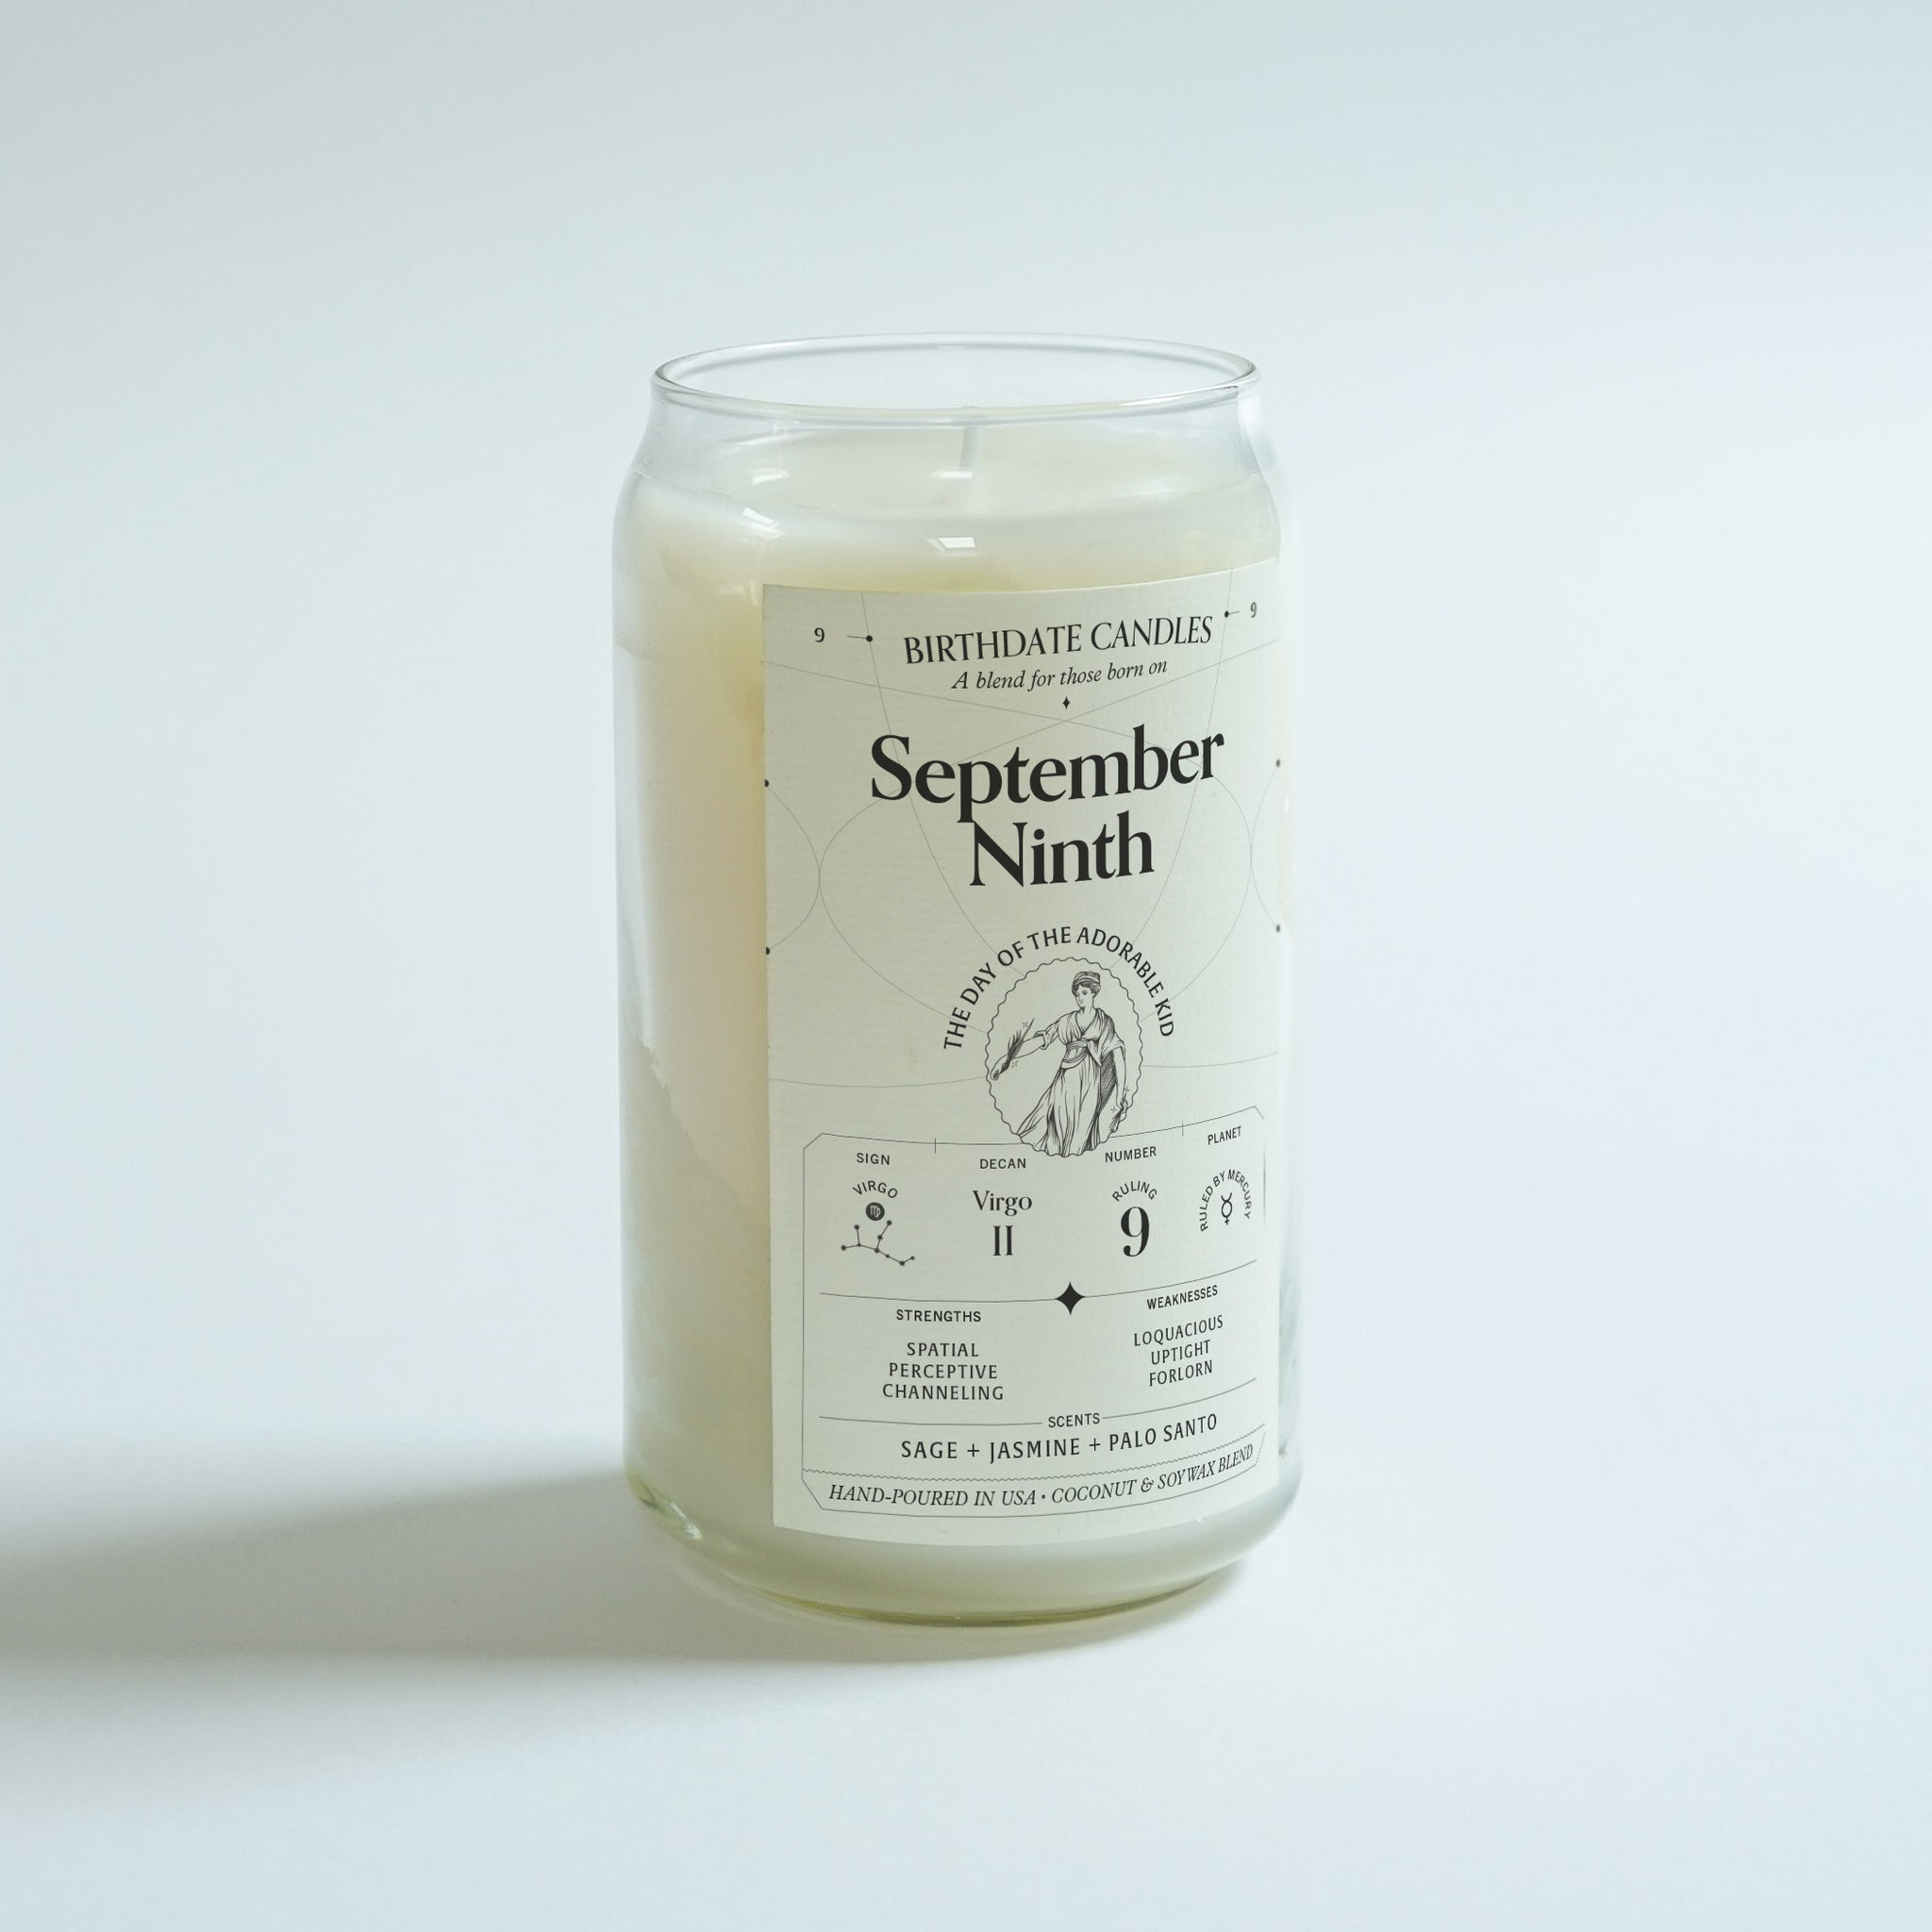 The September Ninth Candle